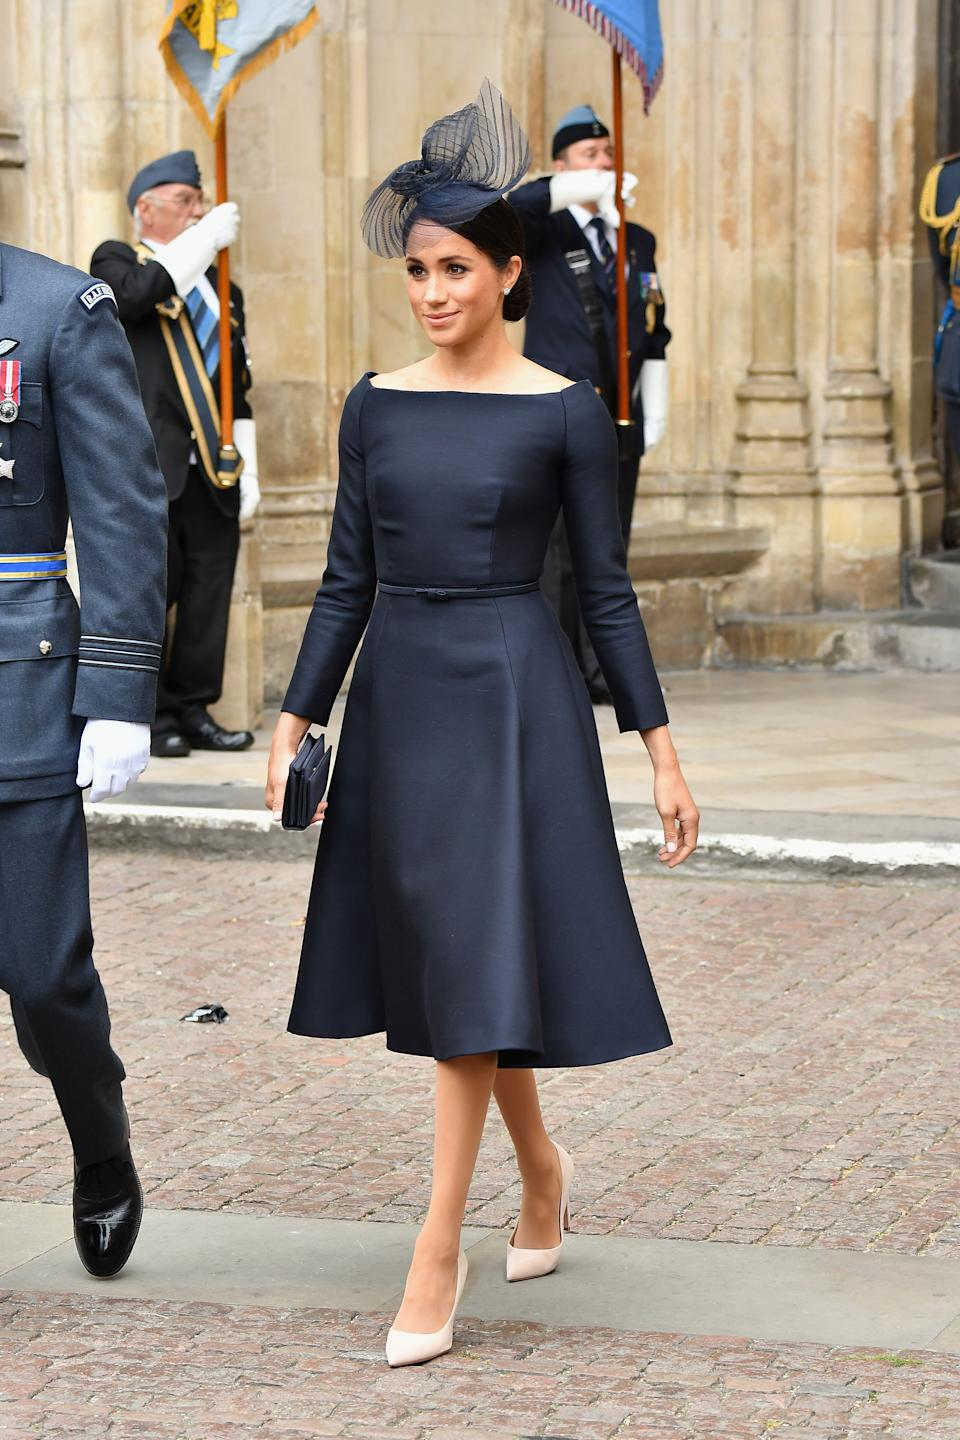 Wearing a Dior dress. (Getty Images)